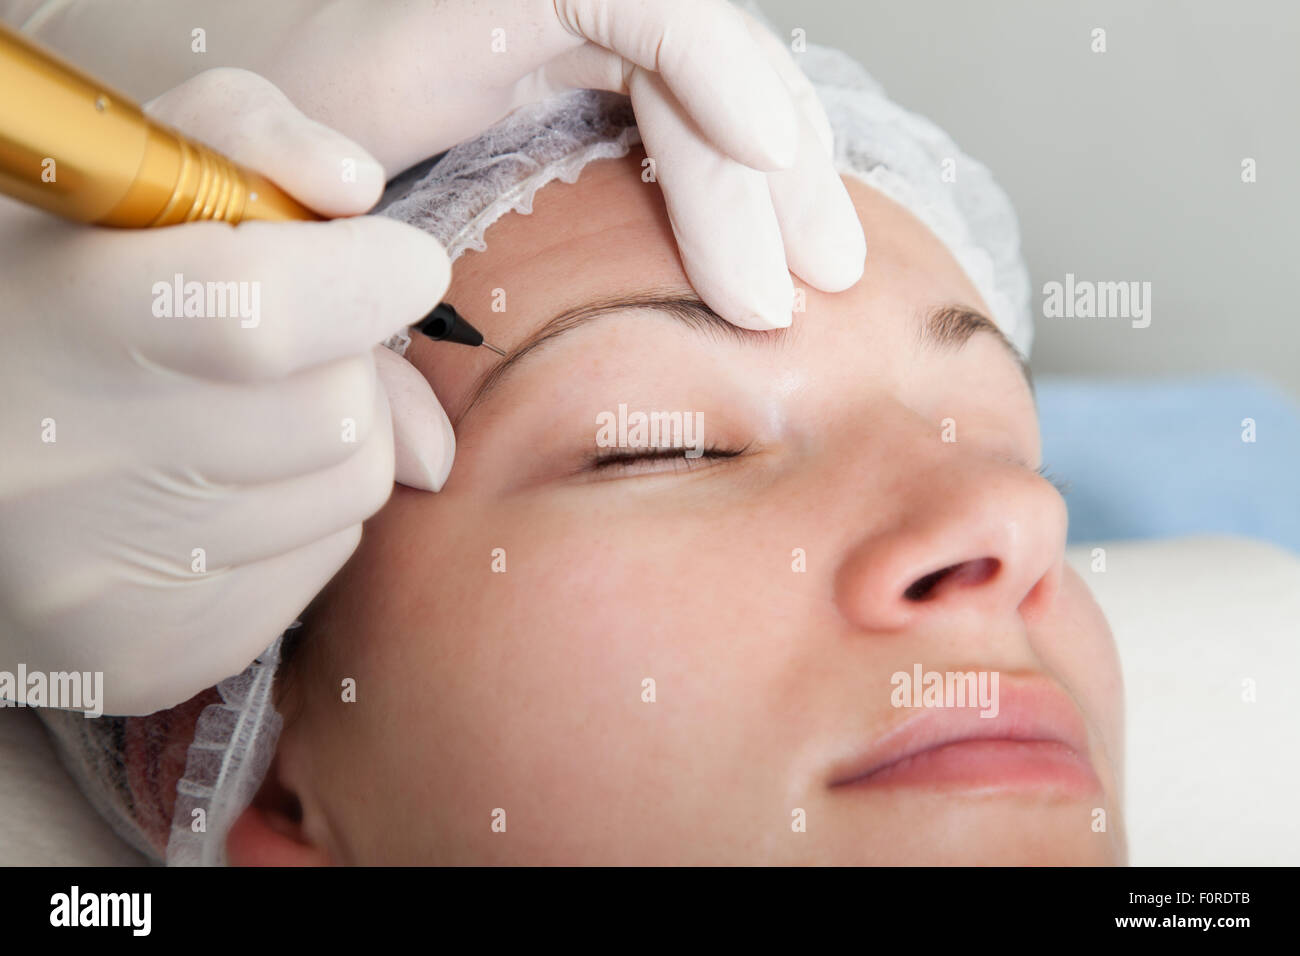 Cosmetologist making permanent makeup - Stock Image